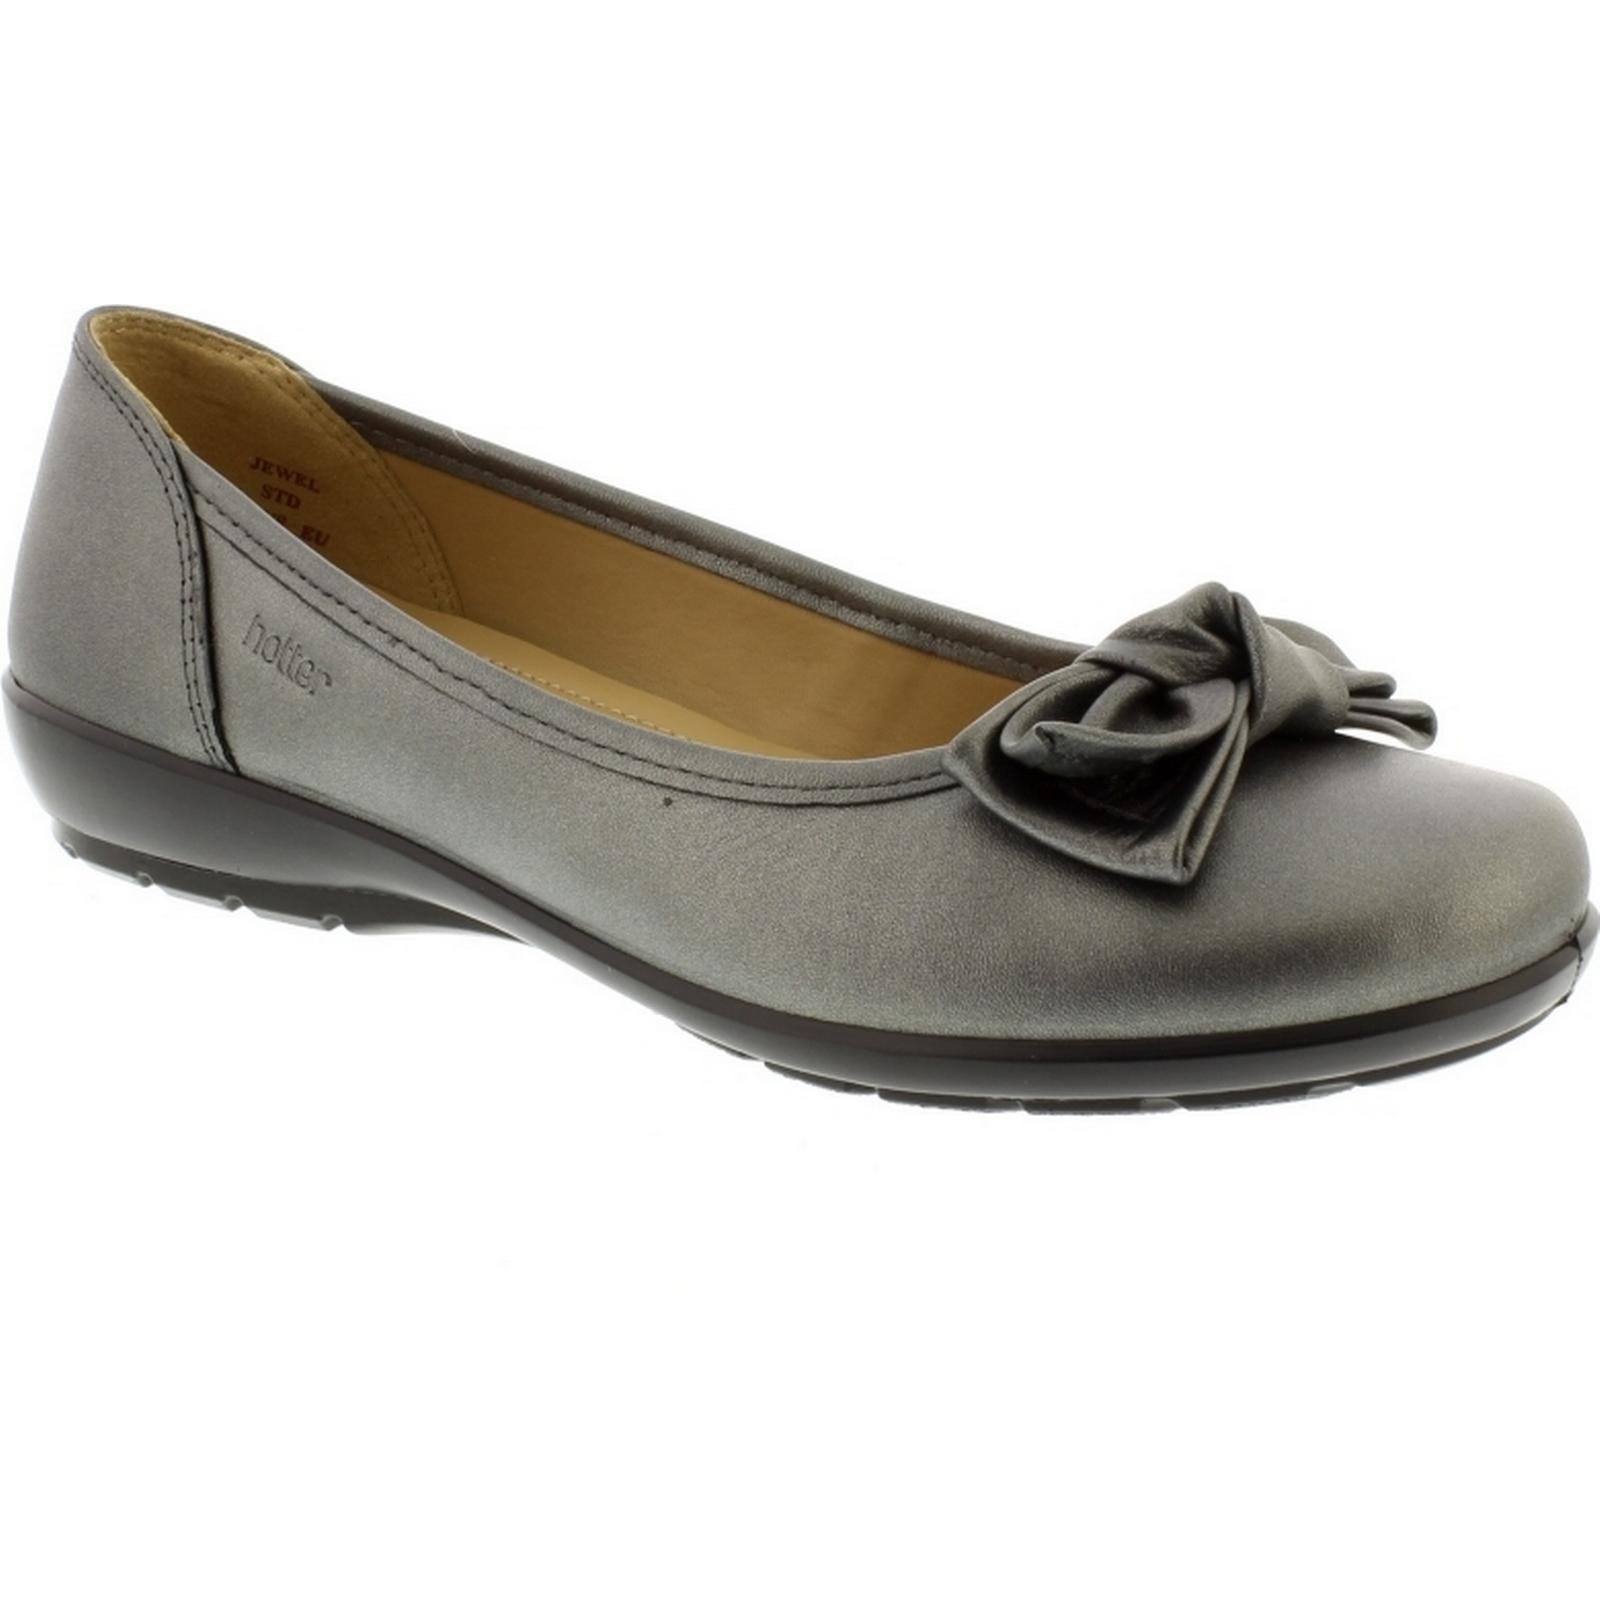 Hotter Originals Jewel  - -  Pewter Leather Size: 4.5 UK 4d54ec